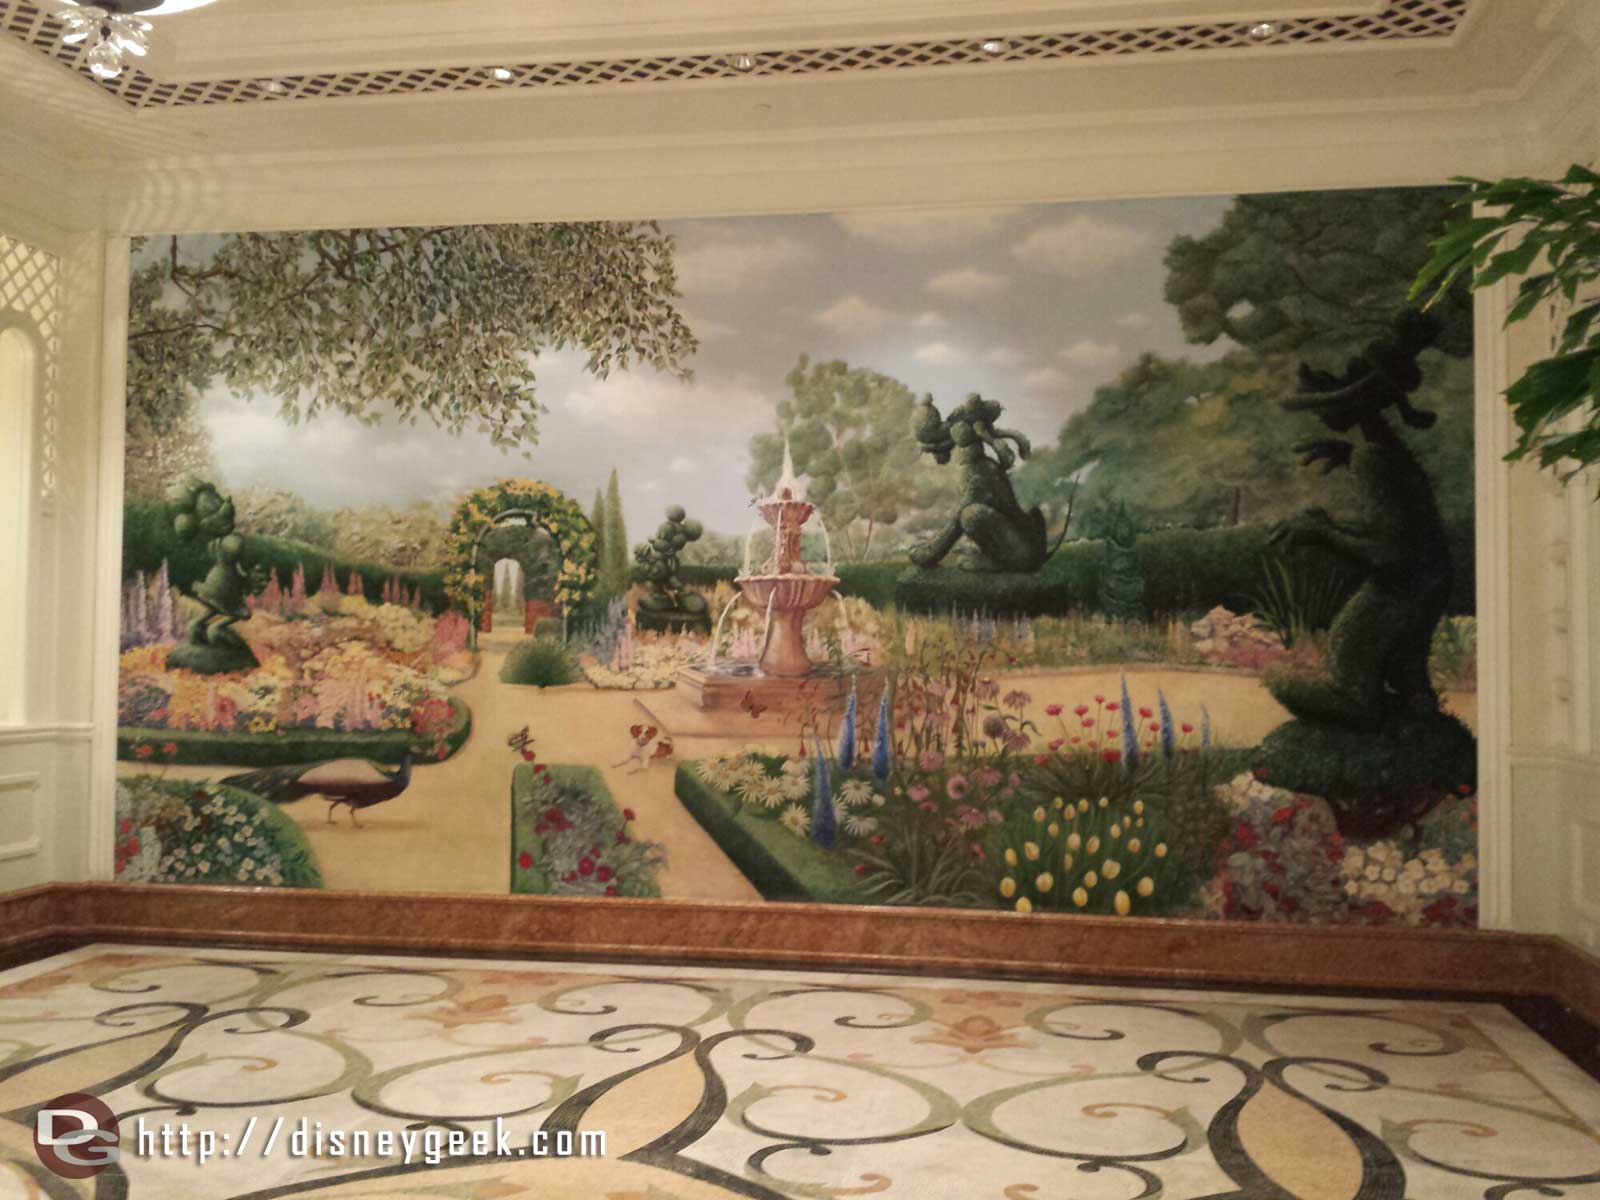 A mural outside the Enchanted Garden @ #HongKongDisneyland Hotel